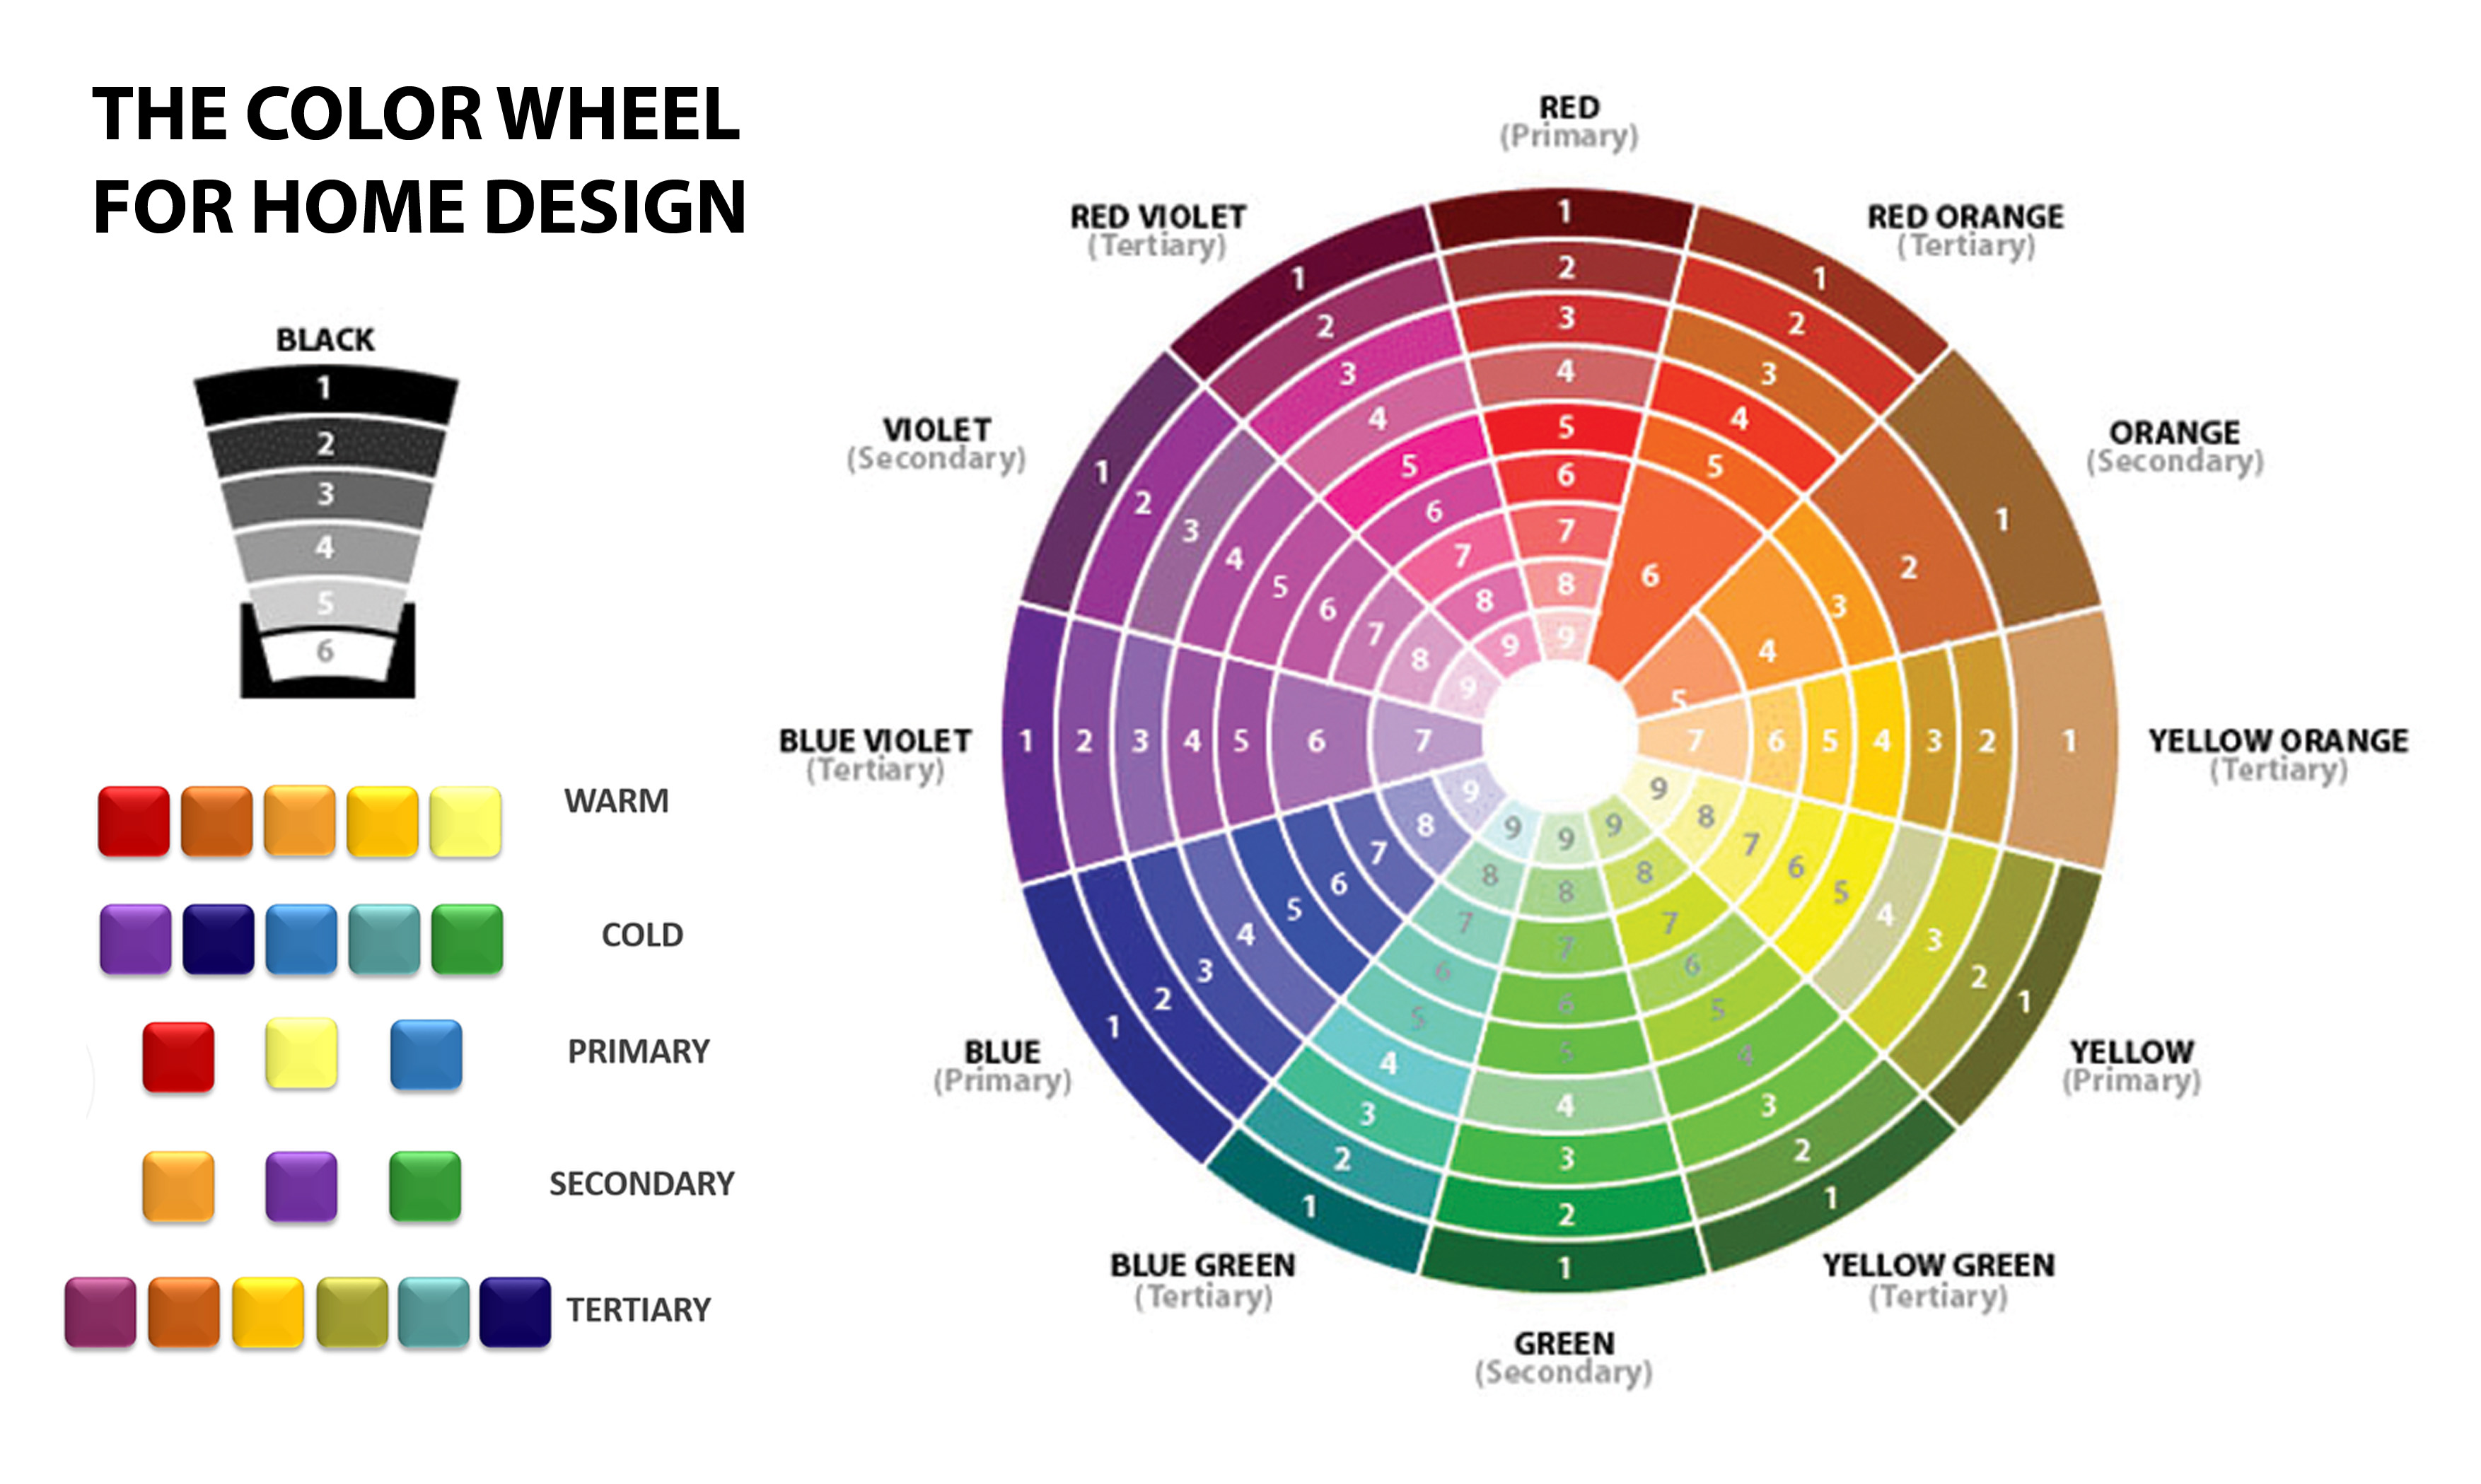 Basics Of Color Theory how to understanding color wheel for home design | roy home design